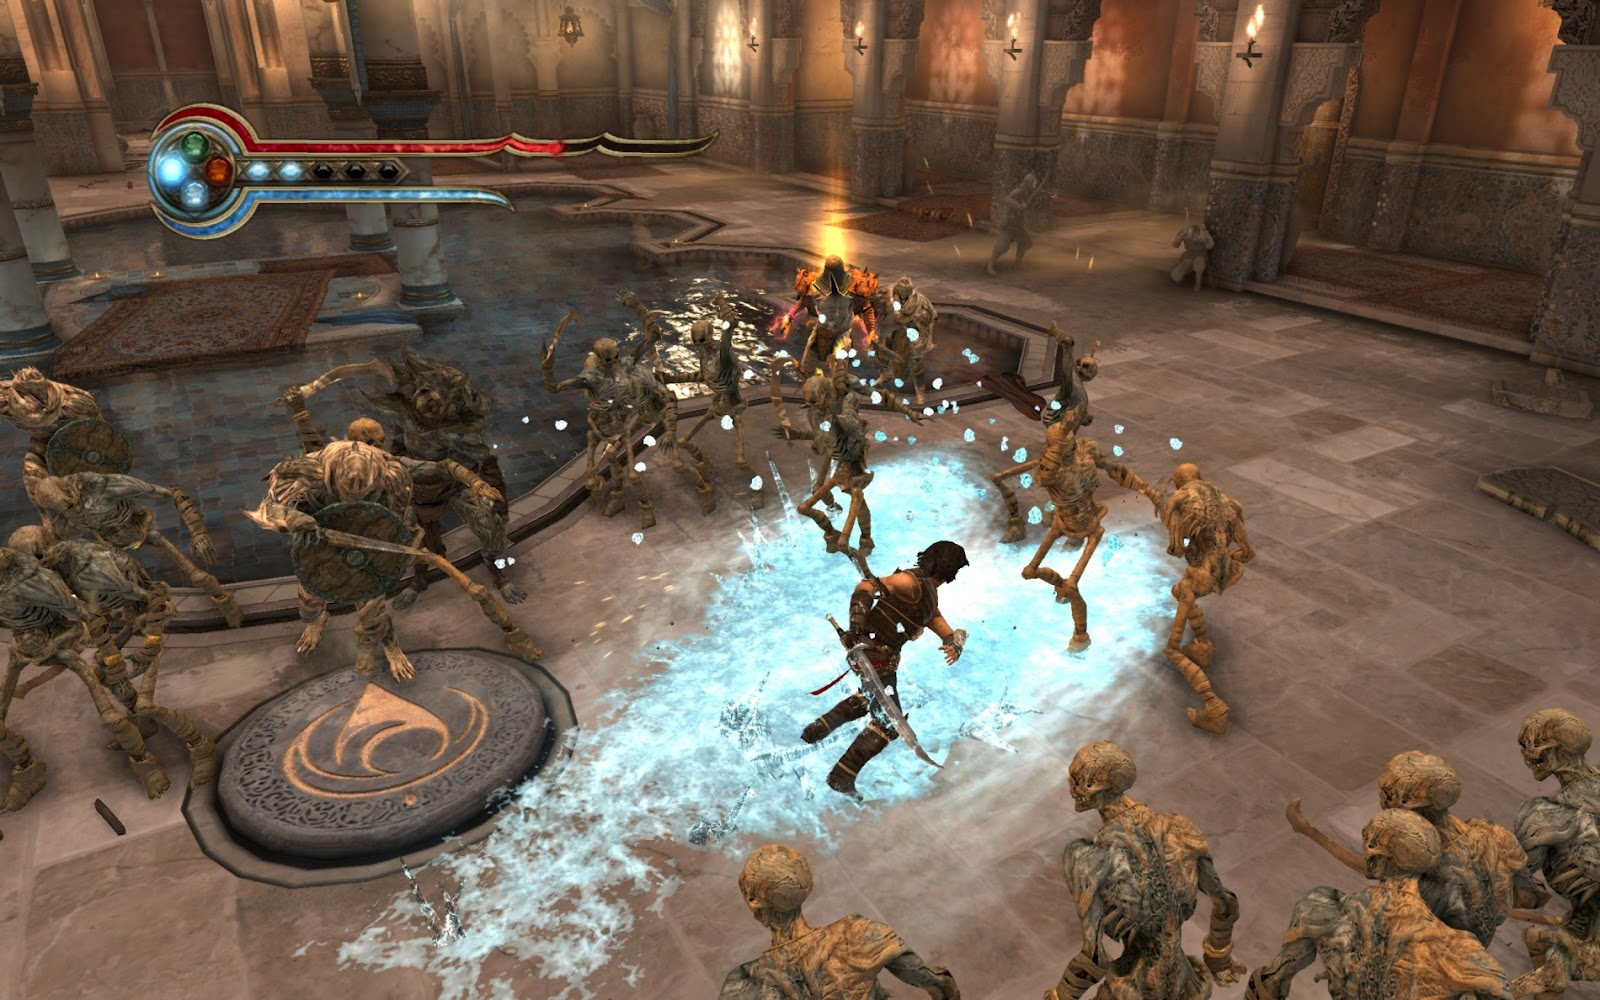 Download Pc games Free: Prince of Persia: The Forgotten Sands